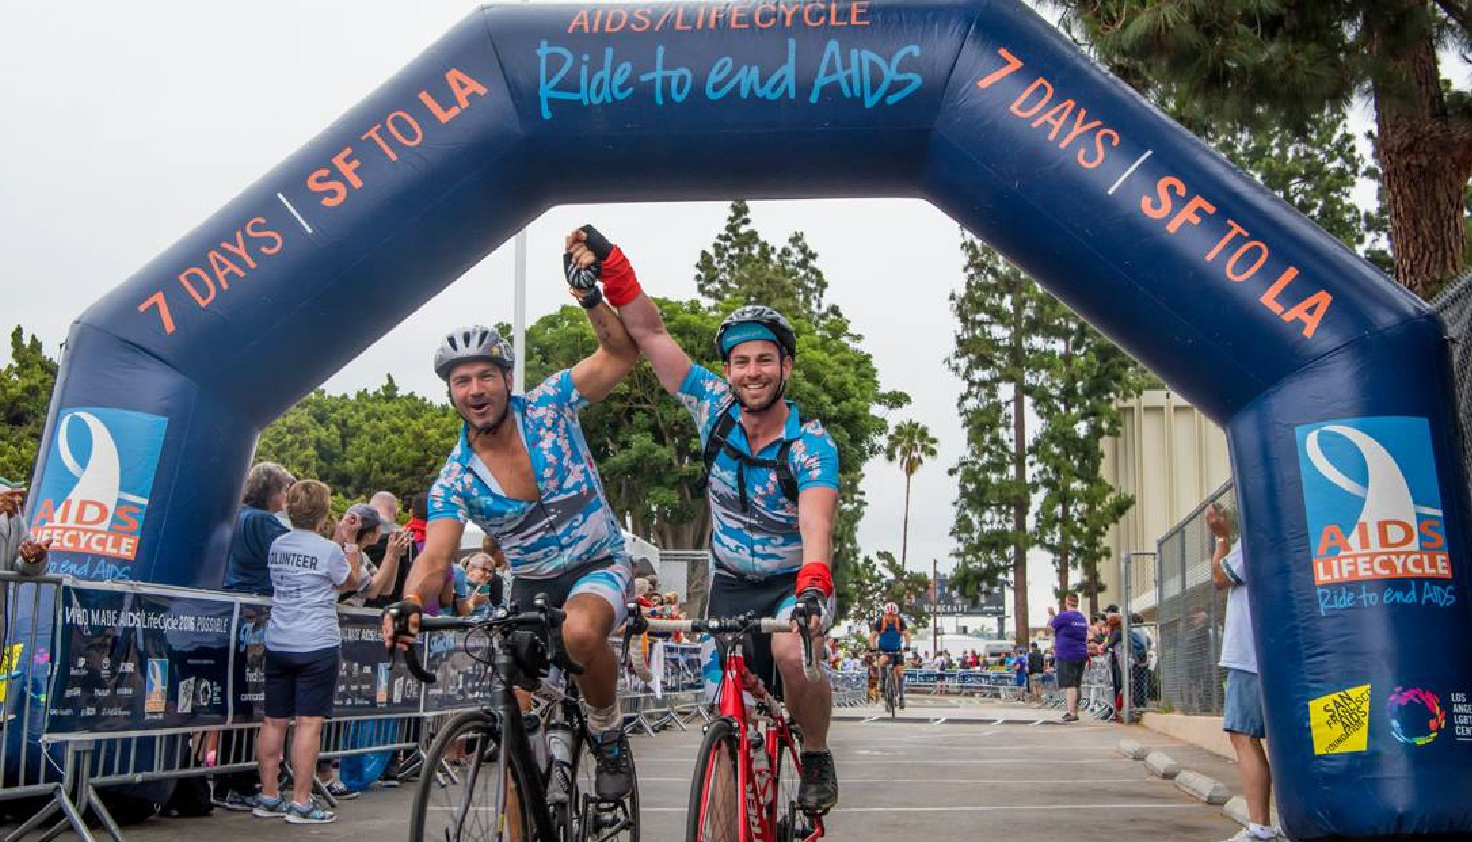 AIDS Lifecycle Custom Blue Inflatable Arch with two participants crossing beneath the arch